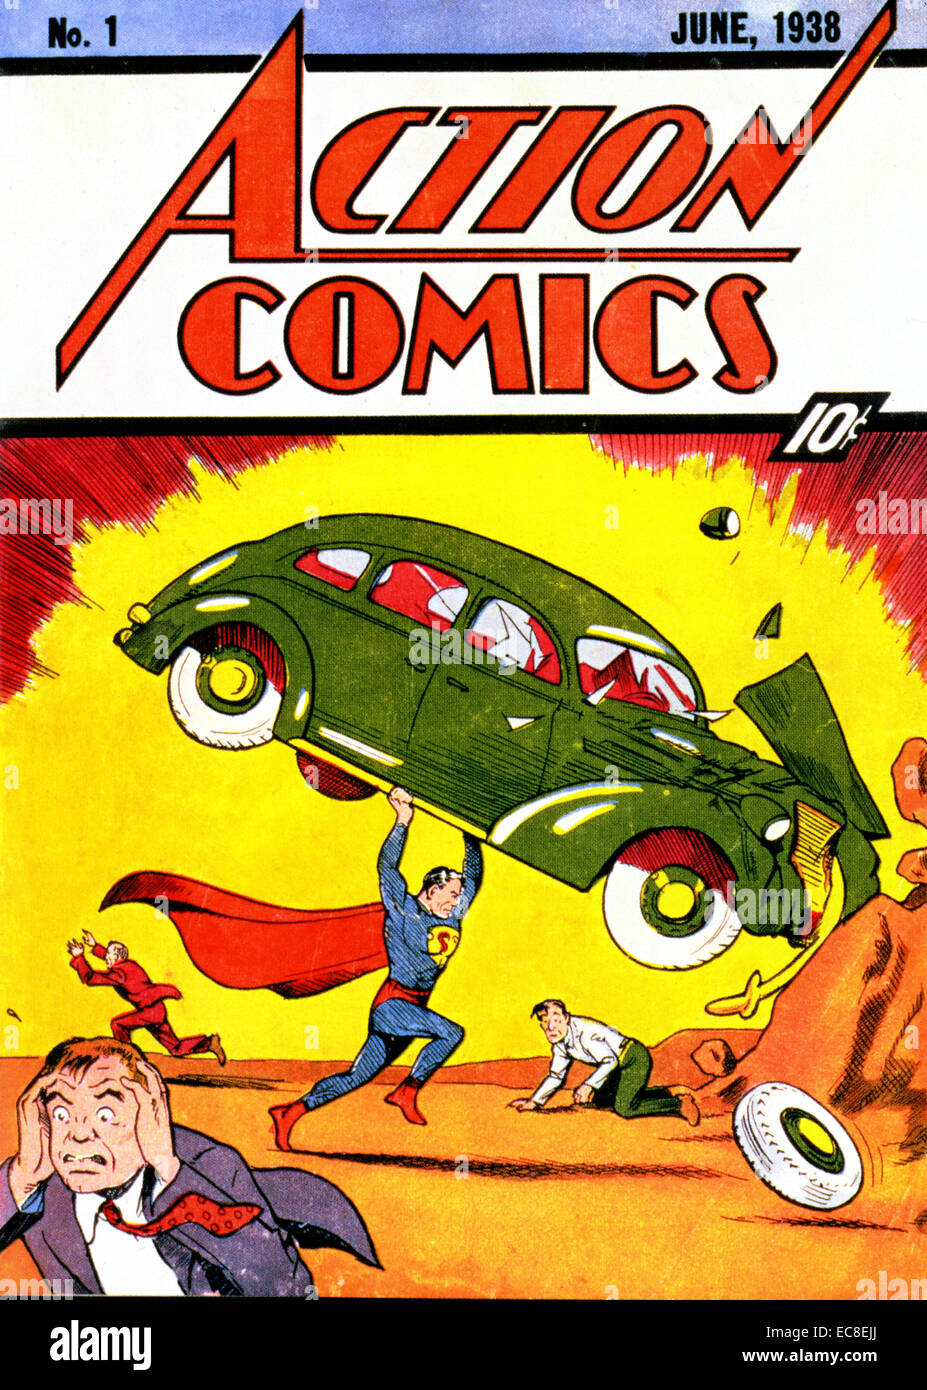 ACTION COMICS No 1 published in June 1938 with the first appearance of Superman - Stock Image